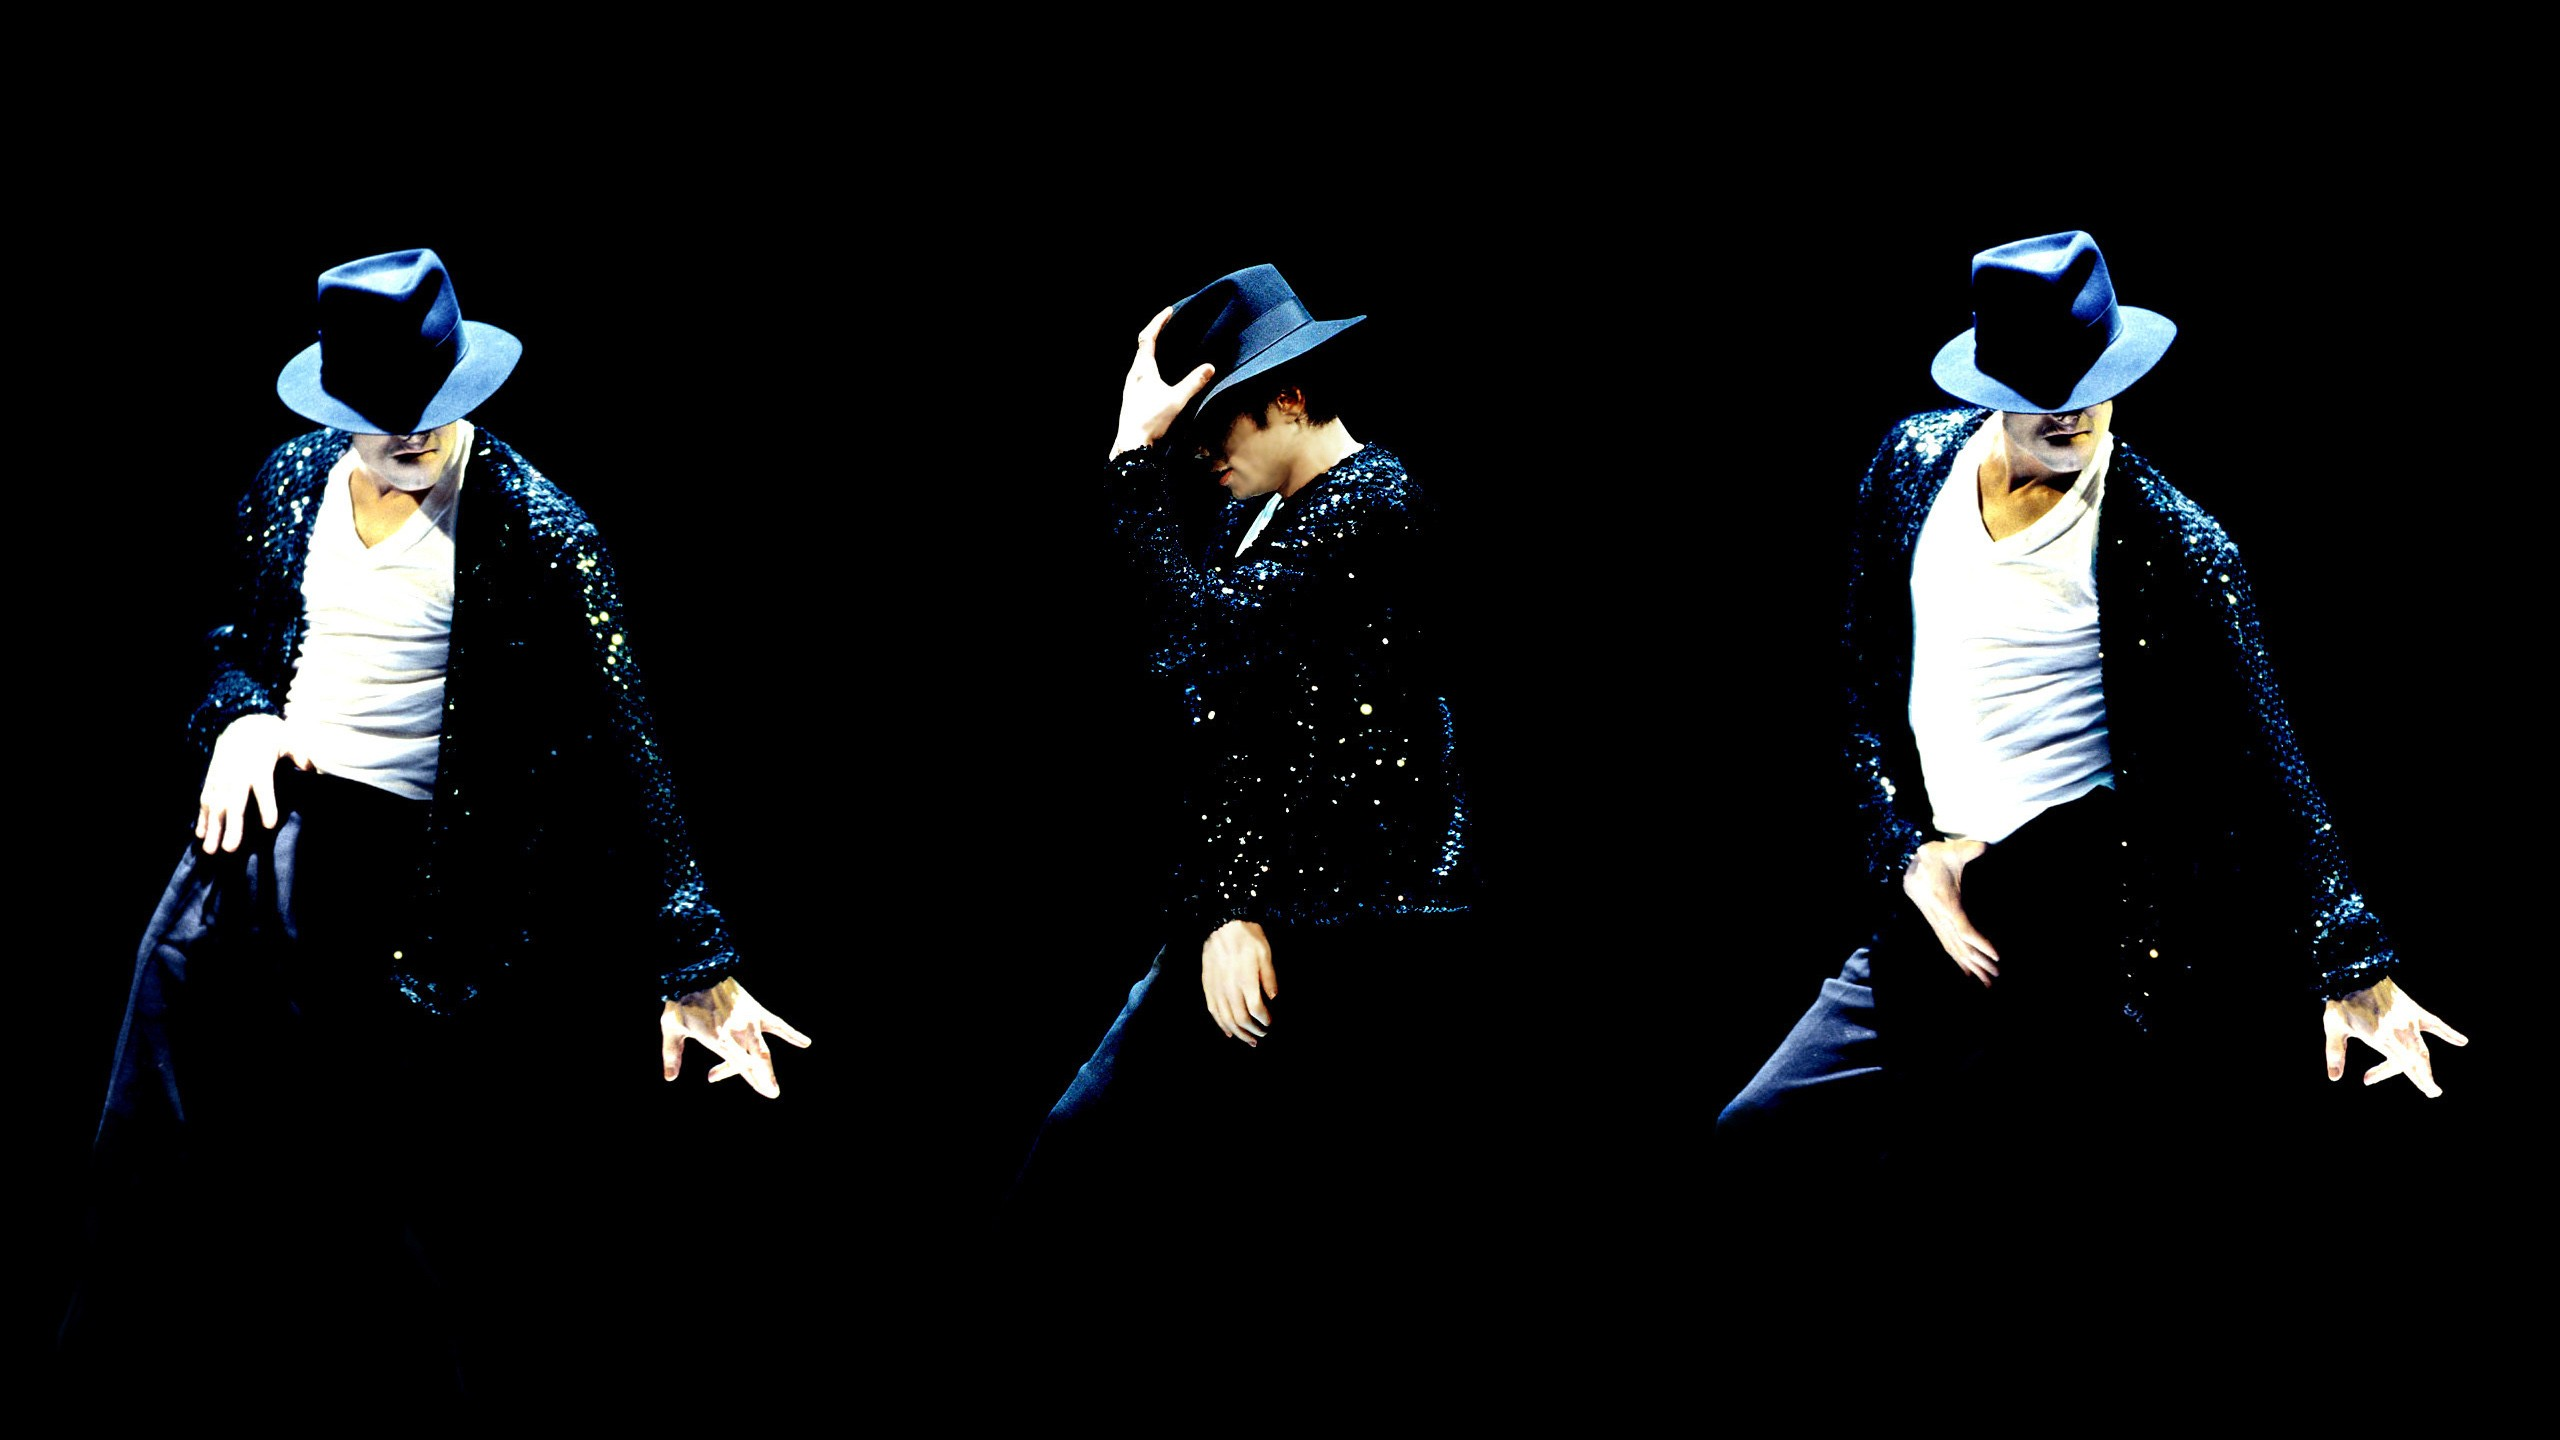 Micheal Jackson Wallpaper